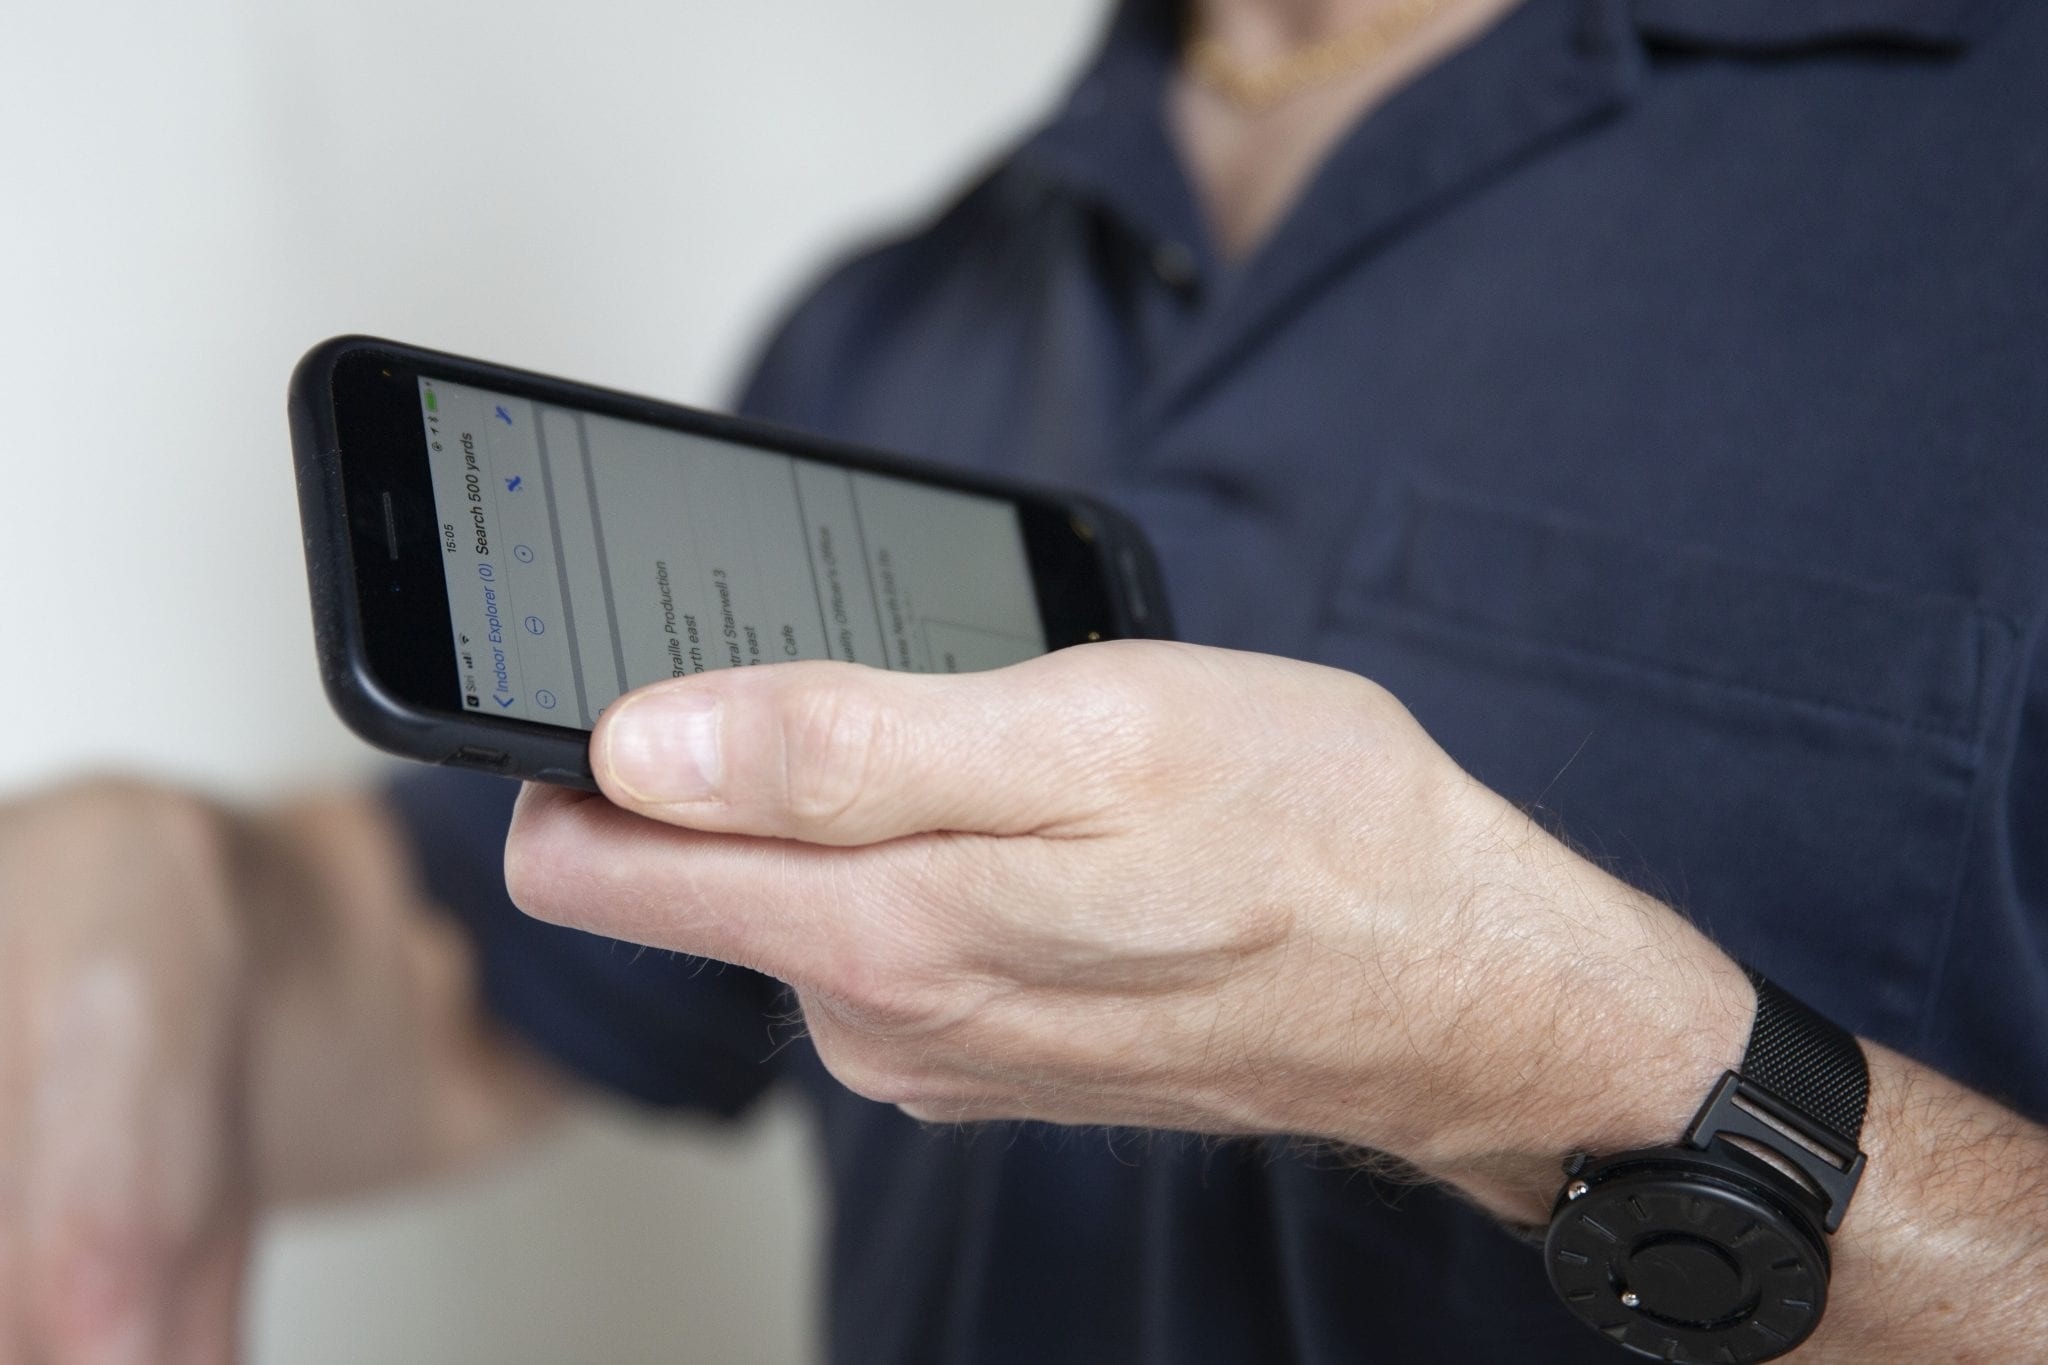 A man's hand holding an iPhone which is displaying the Indoor Explorer search screen.